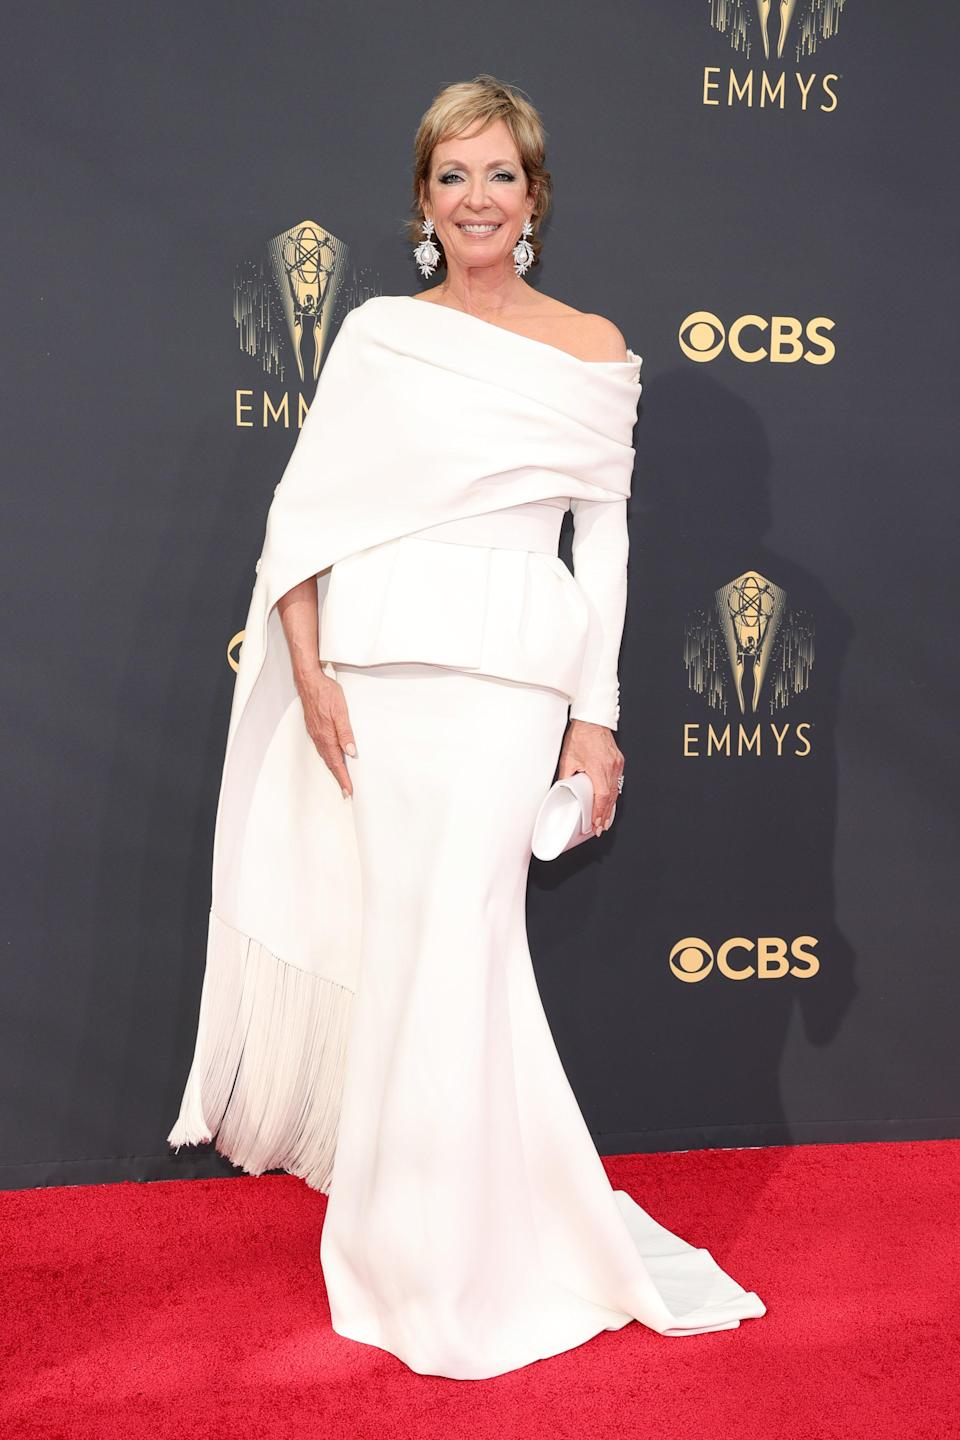 The icon herself! Allison wore an off-the-shoulder white gown with statement earrings.